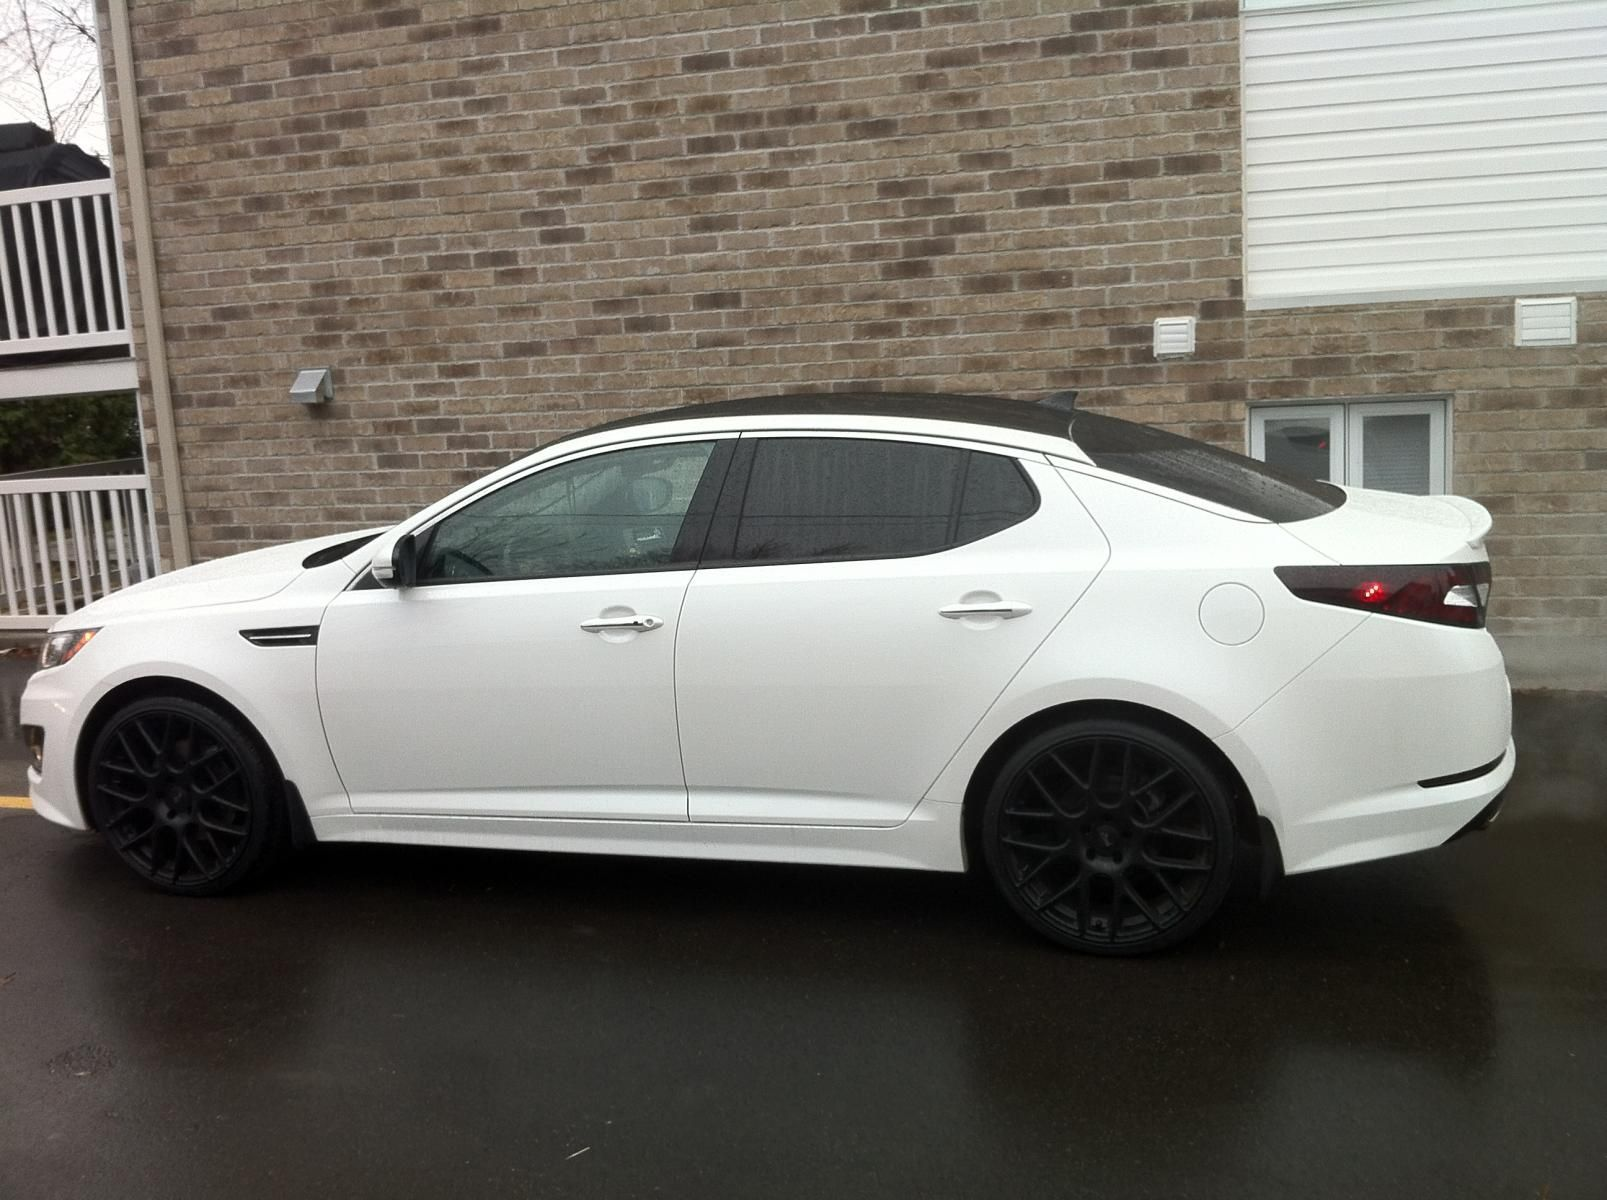 Kia optima love mine me too this is my second one i just